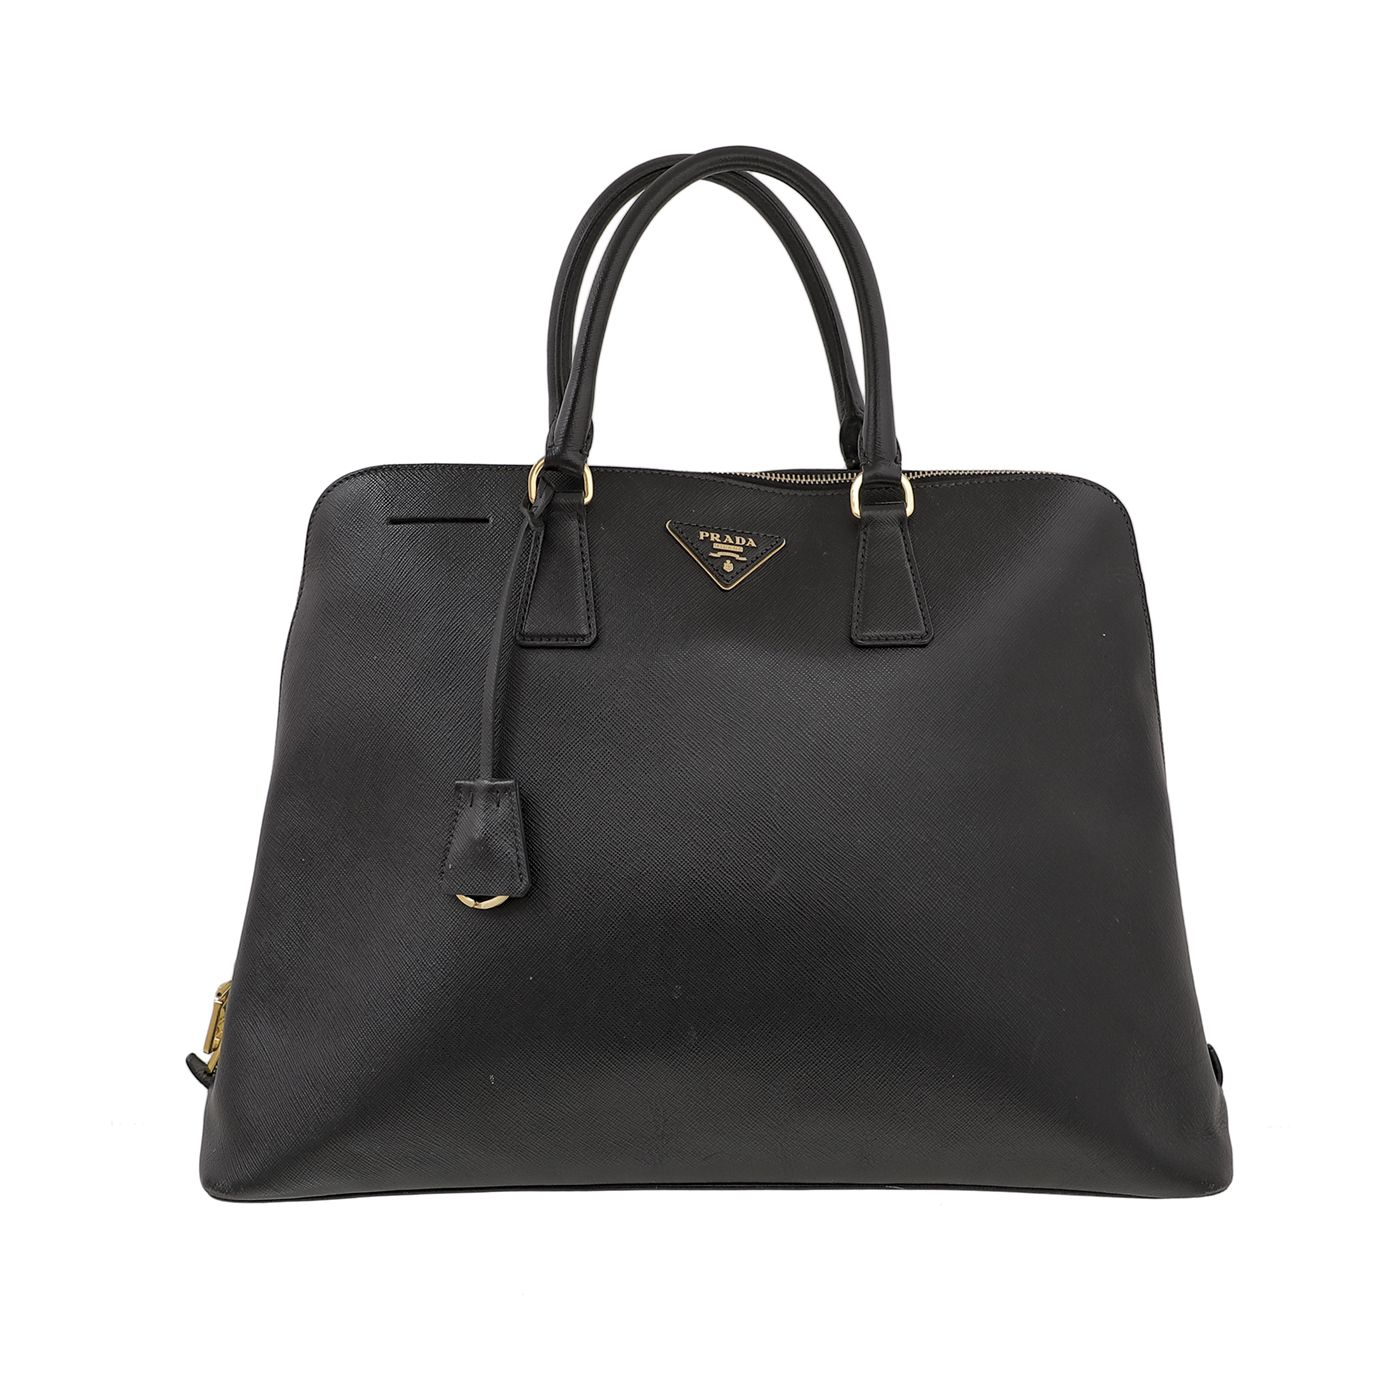 Prada Black Promenade Lux Bag